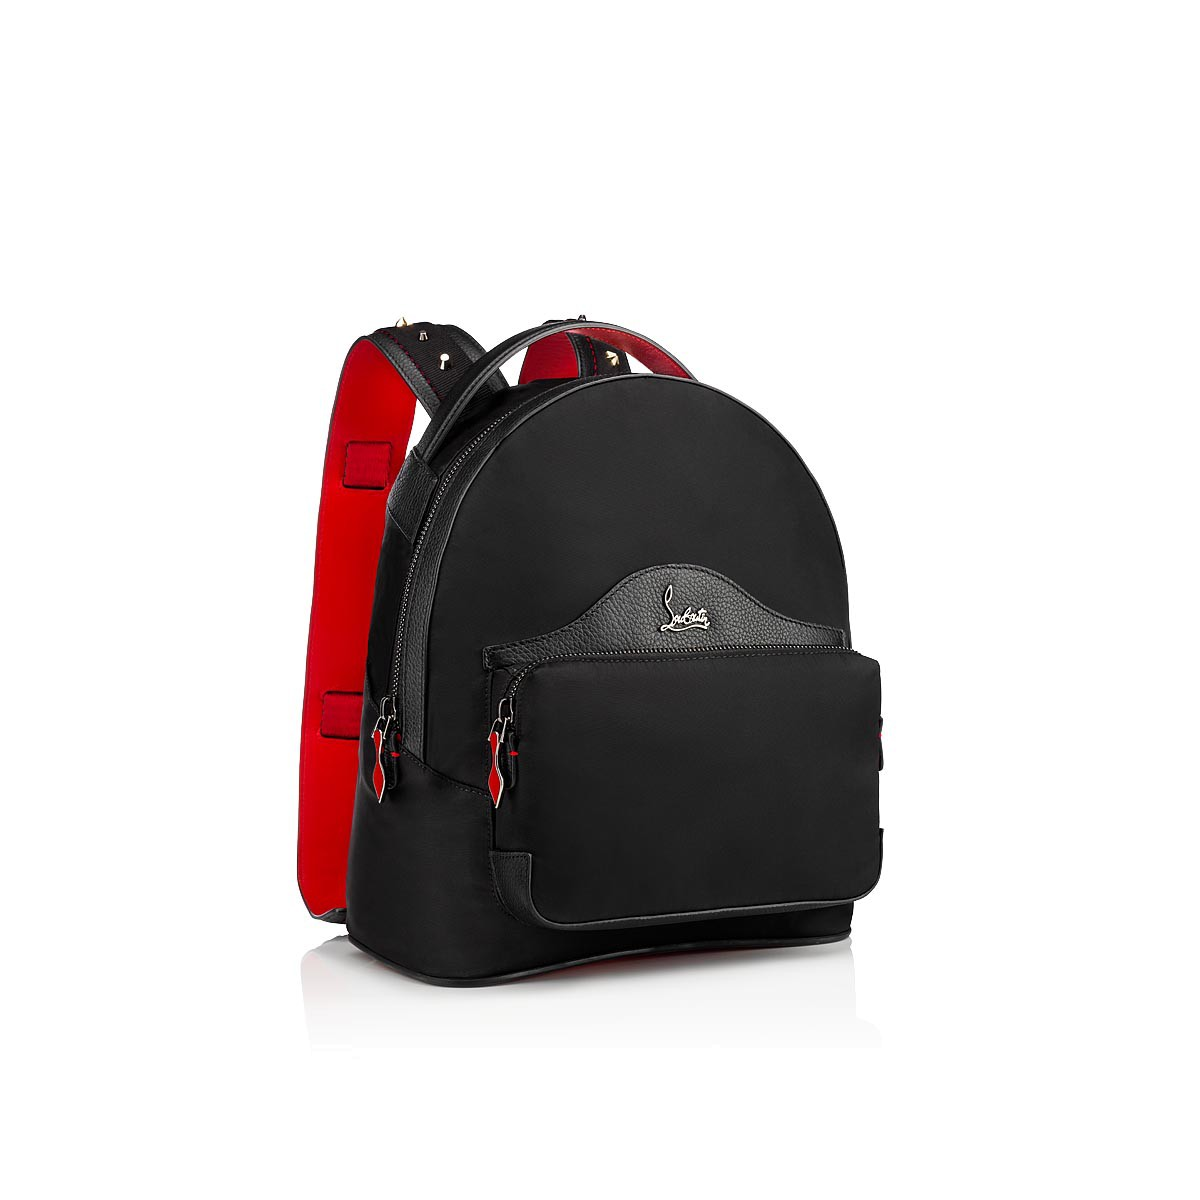 Bags - Backloubi Small Backpack - Christian Louboutin